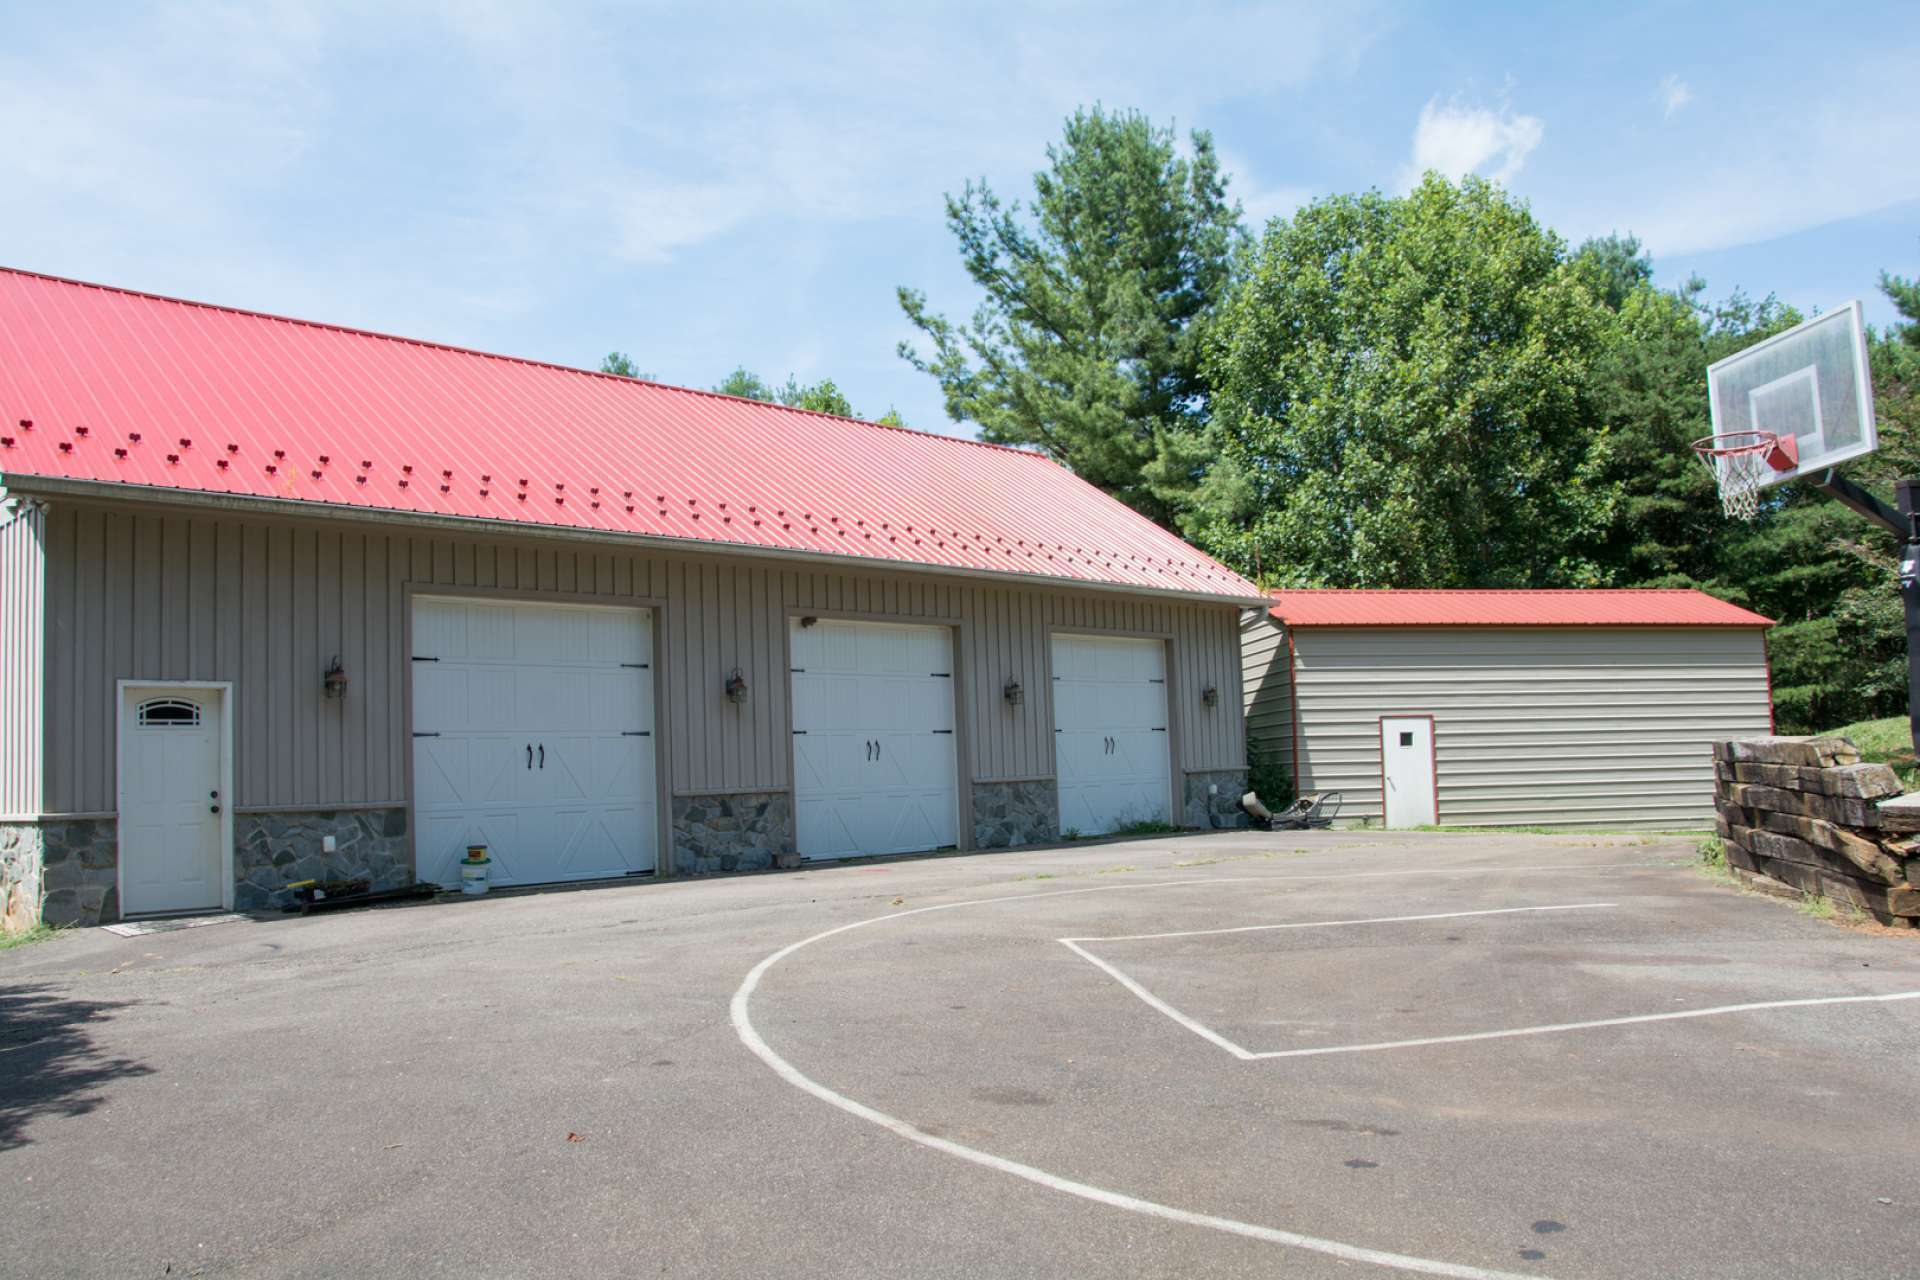 This 1,800 square foot detached heated 3-car garage provides plenty of protective coverage for your vehicles. Another 450 sq. ft. metal building provides additional storage space. There is another detached outbuilding with 2 garage bays.